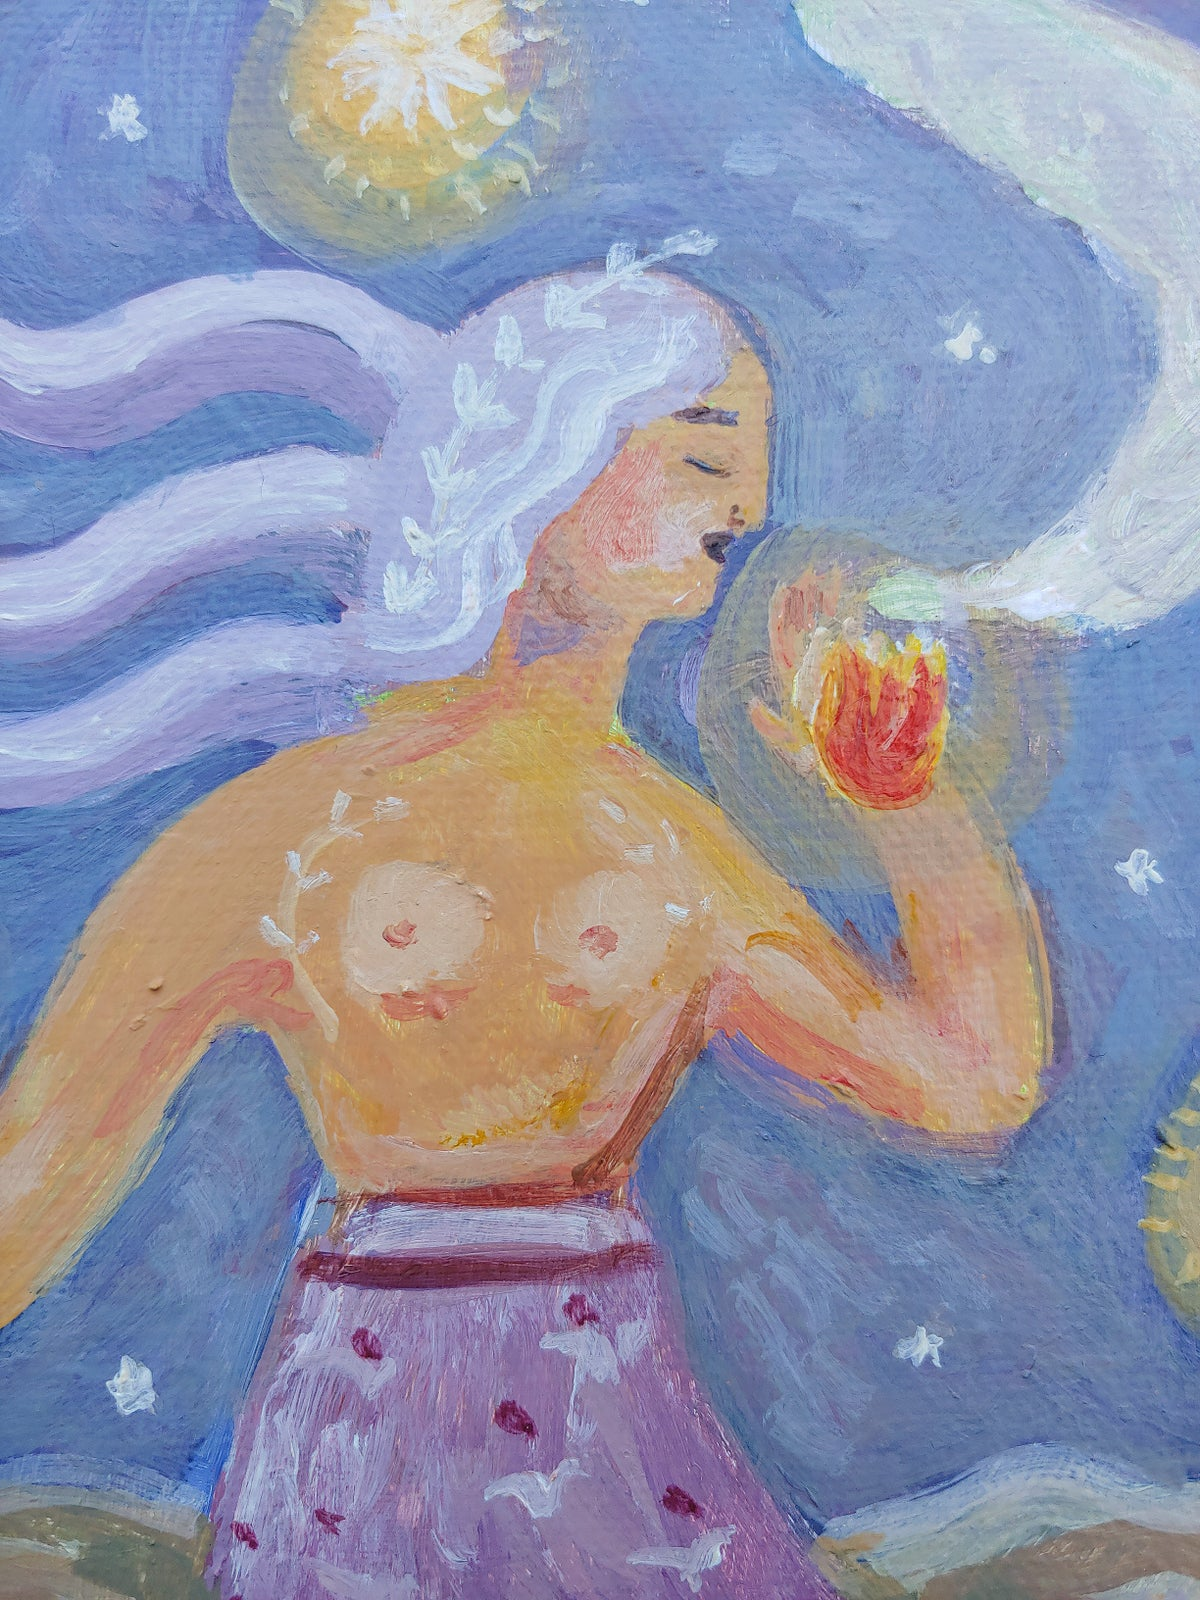 Image of Galaxy Girl | 8x10 Original painting on canvas